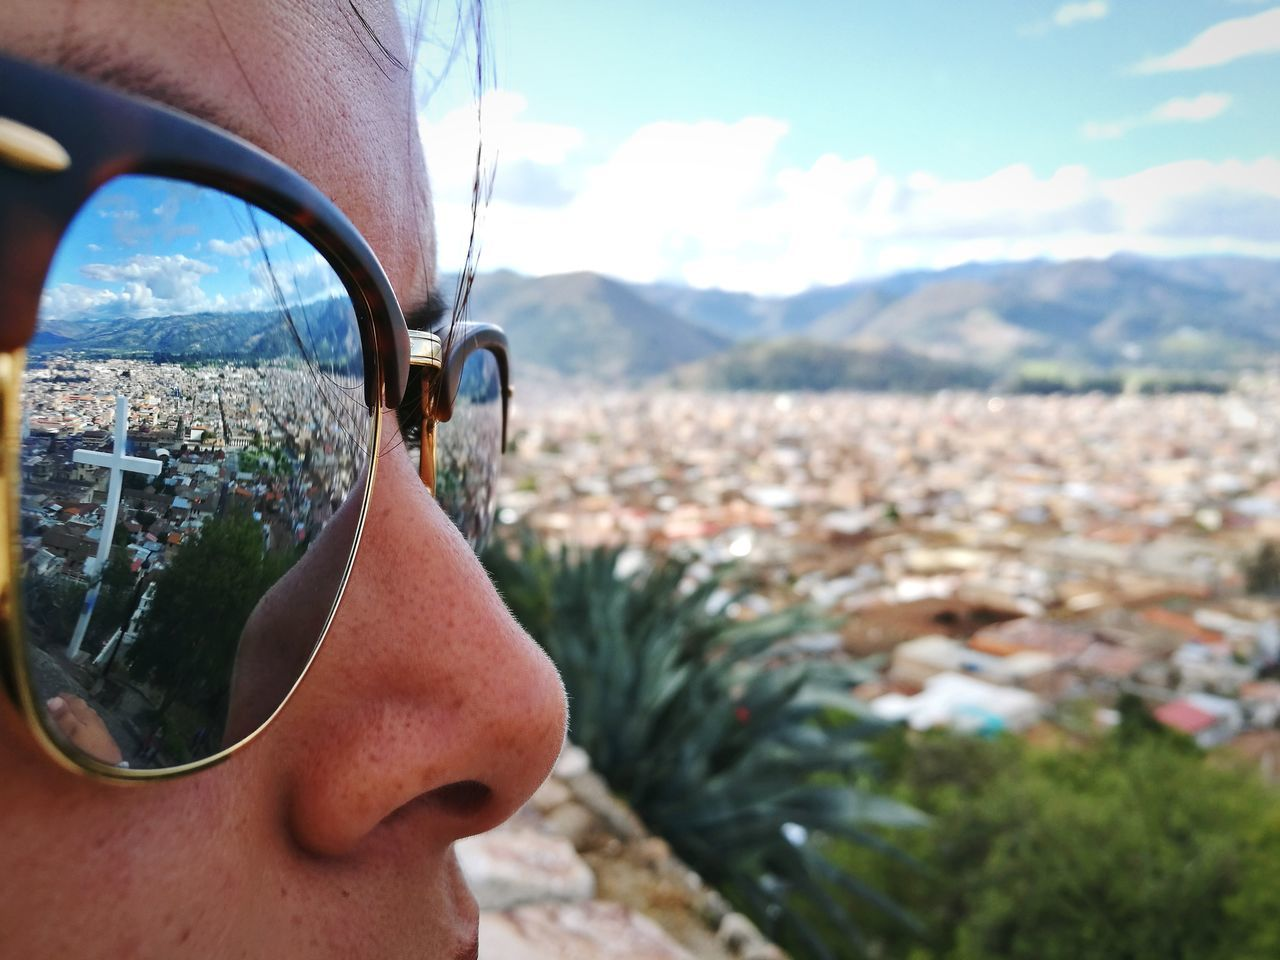 Watching Cajamarca, Perù Sunglasses Mountain Headshot Adult Adults Only People Mountain Range One Person Day Side View Mature Adult Landscape Portrait Outdoors Only Men One Man Only Vacations Men Adventure Close-up Leica Huawei P9 EyeEm Best Shots EyeEm Selects Fresh 3 Travel Destinations Let's Go. Together.